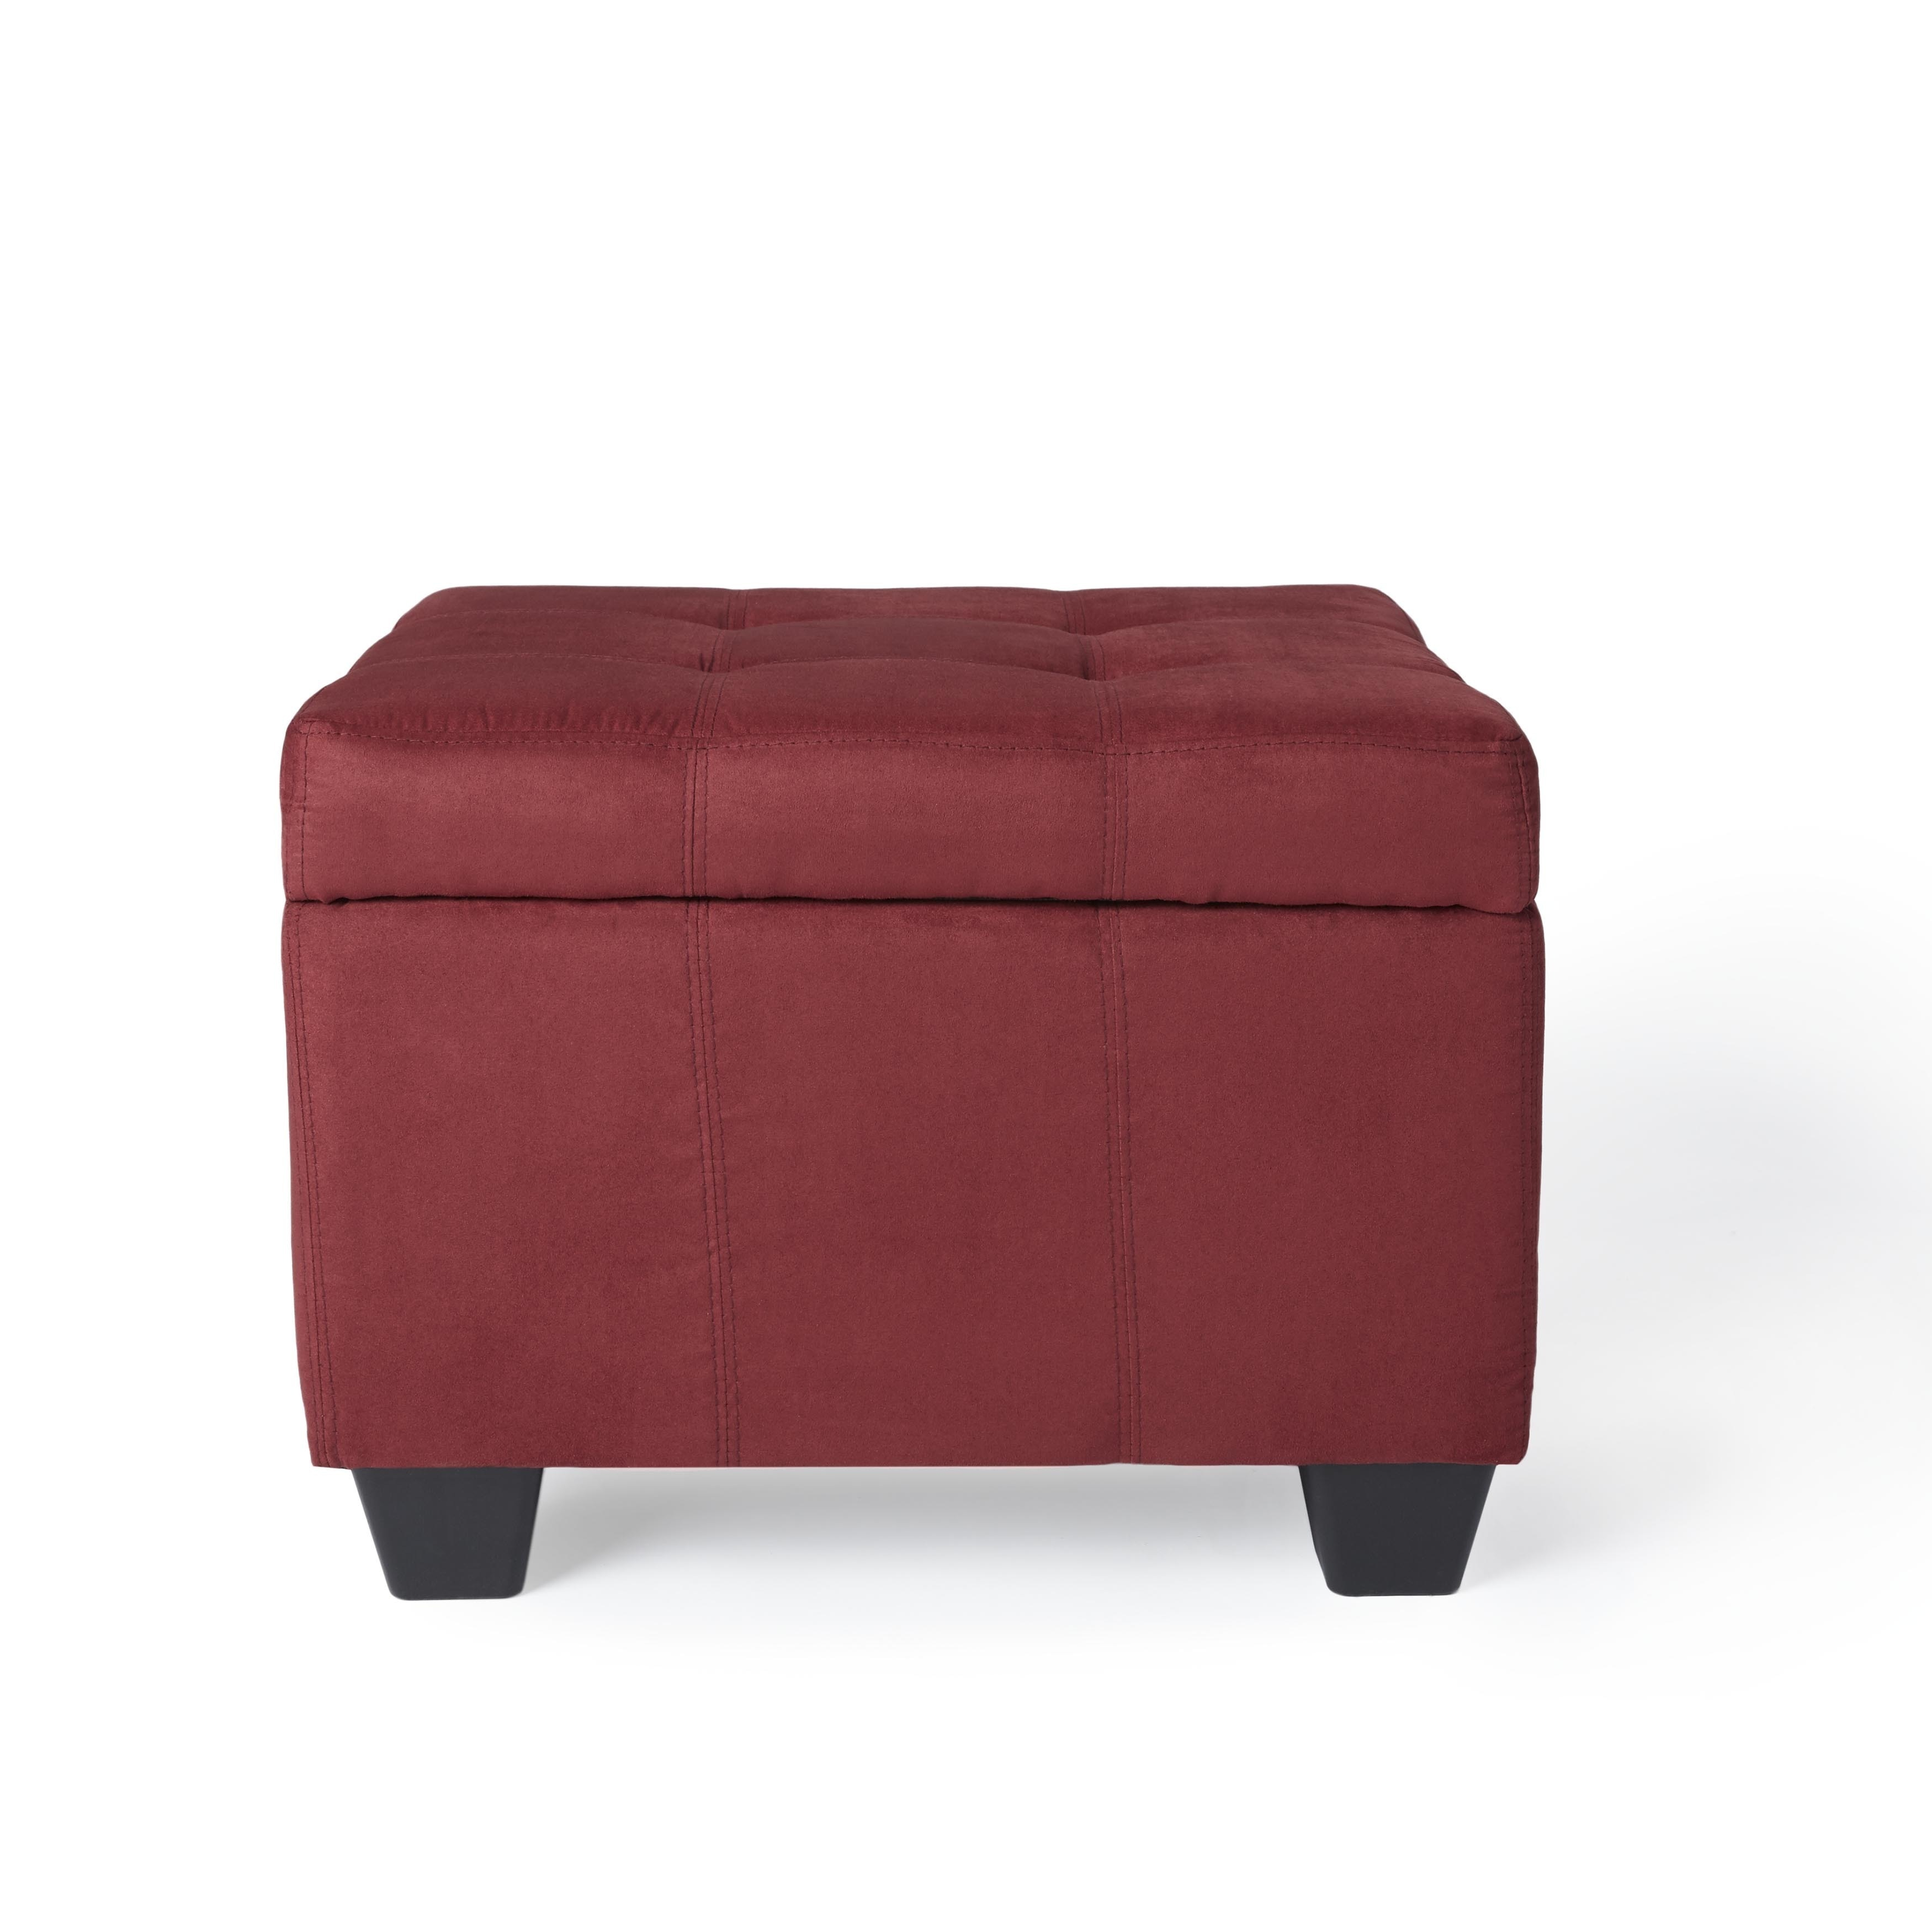 ottoman storage on bench furniture seat perfect x